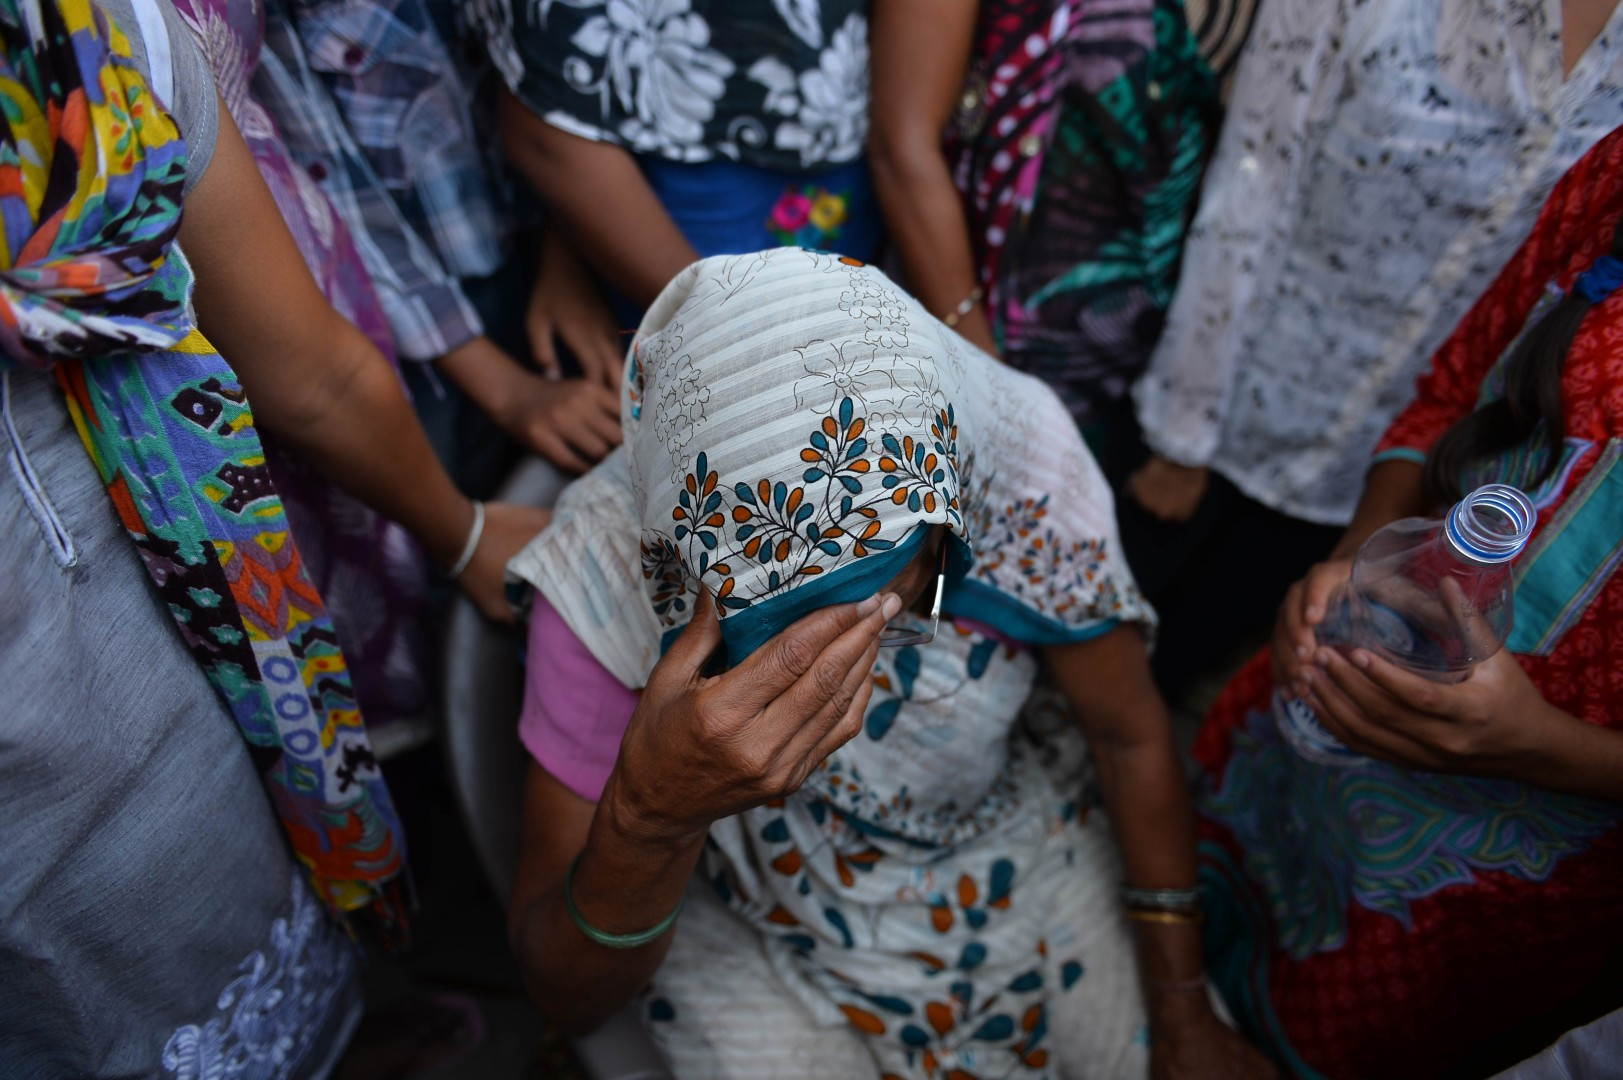 We don't feel safe': After rape of two young girls in New Delhi